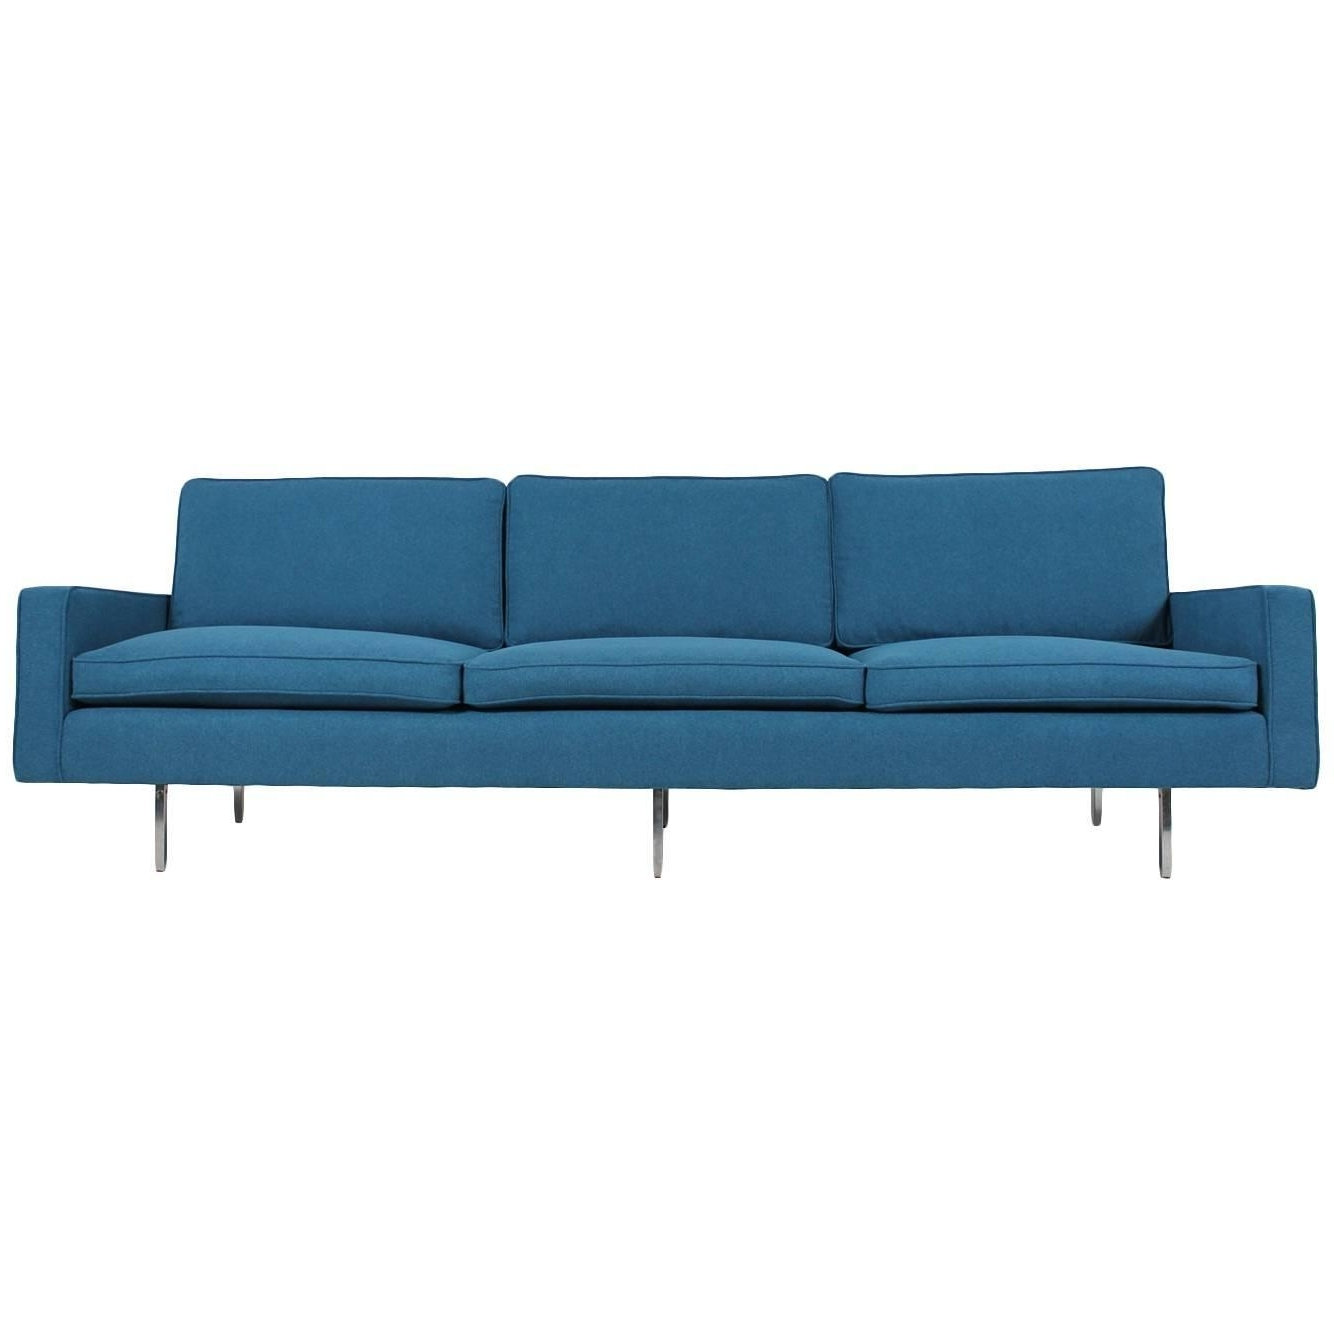 Florence Knoll Sofas – 59 For Sale At 1Stdibs For Preferred Florence Large Sofas (View 6 of 20)